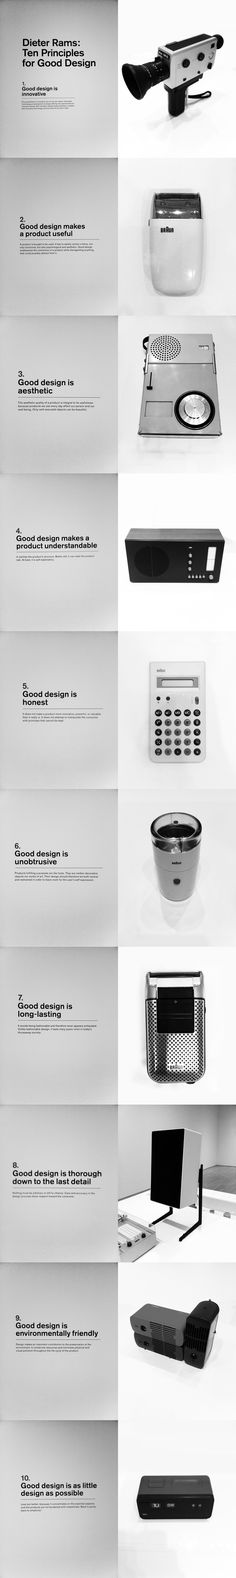 Deiter Rams: Ten Principles for Good Design